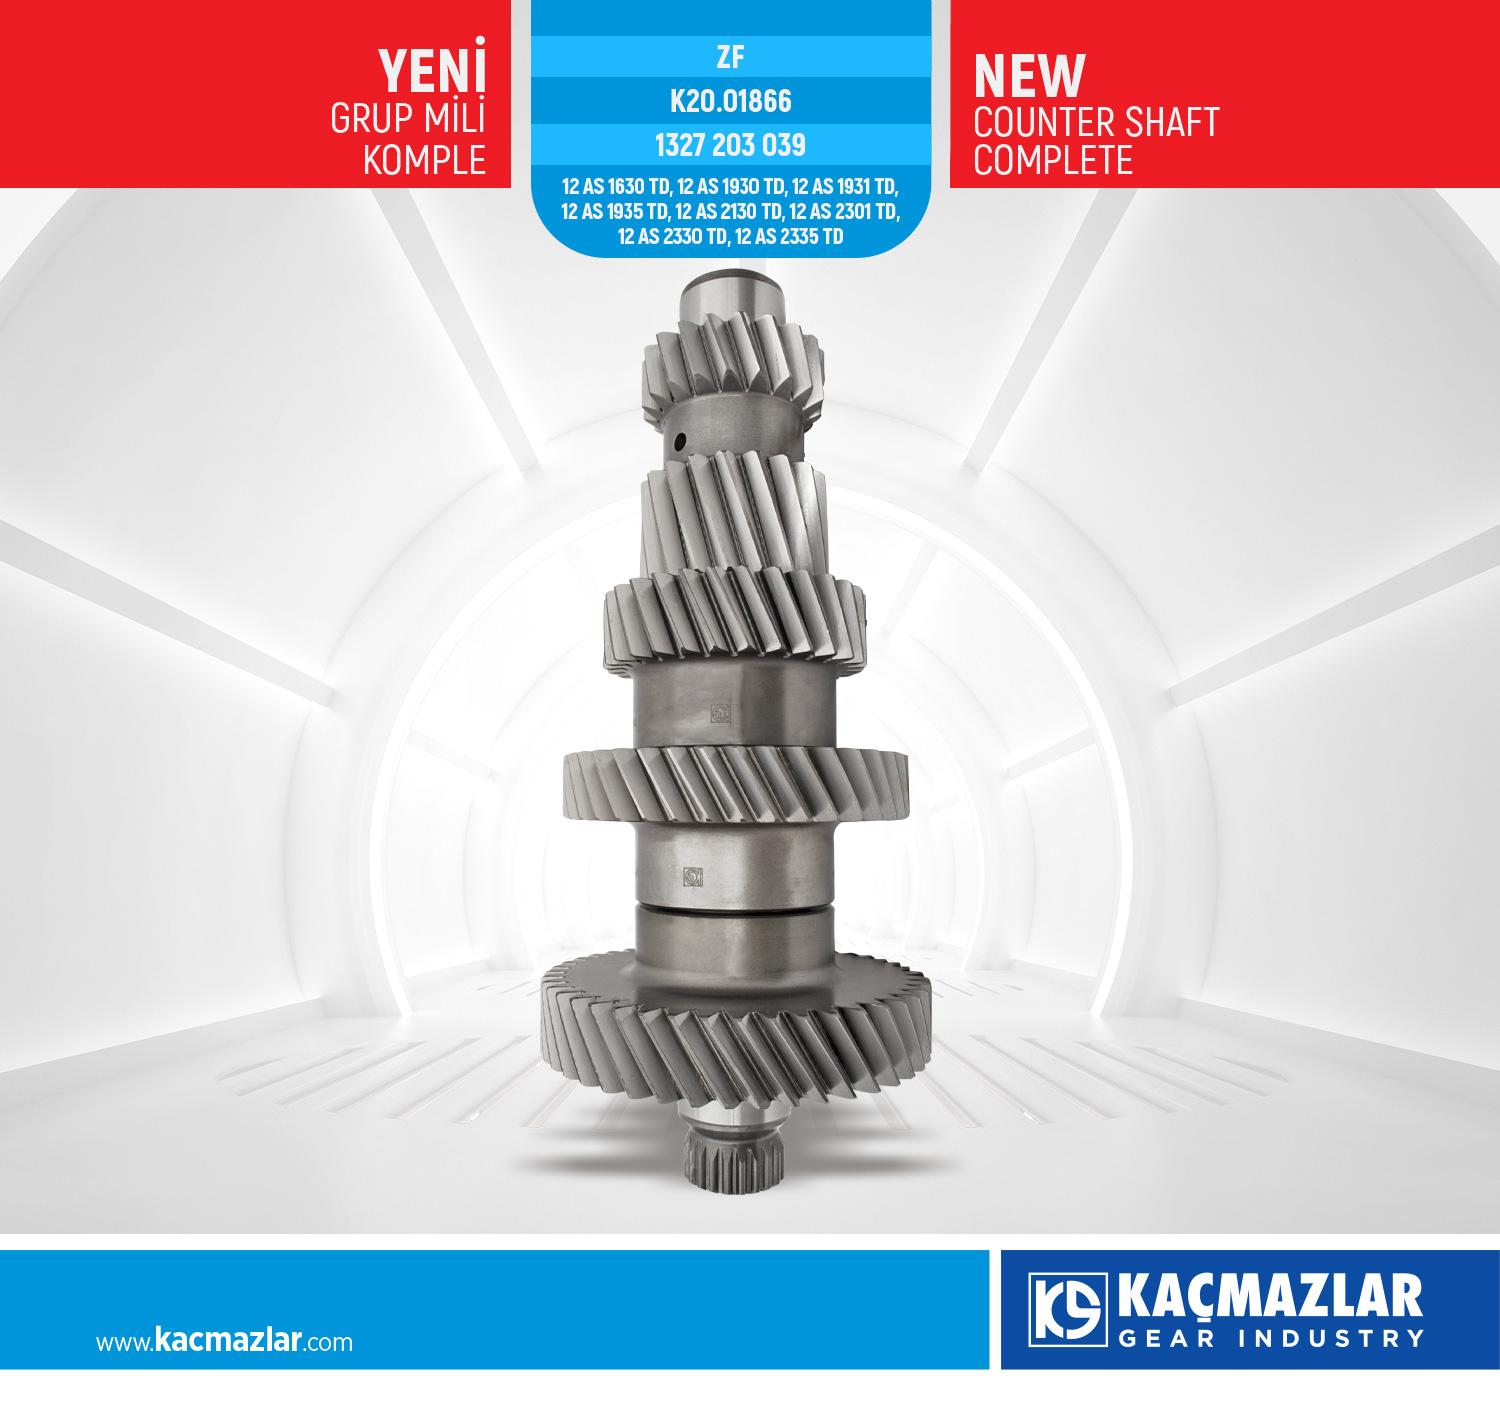 GRUP MİLİ KOMPLE - COUNTER SHAFT COMPLETE / ZF